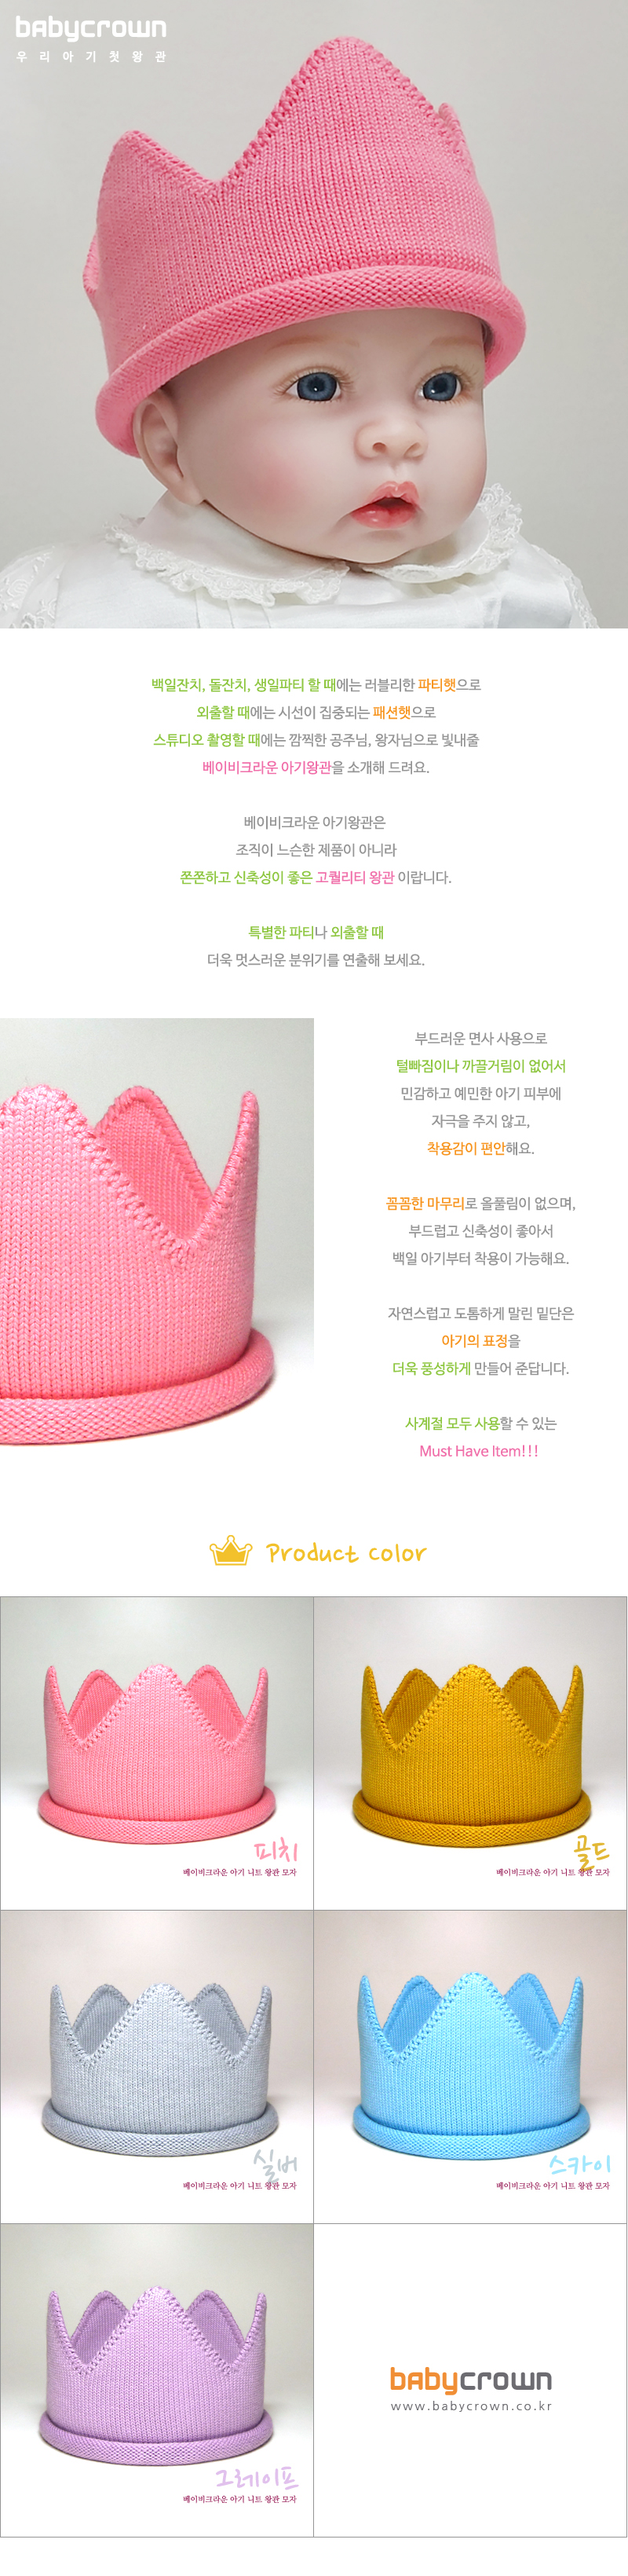 [ Babycrown ] [Baby Crown] baby knit crown cutie (peach)